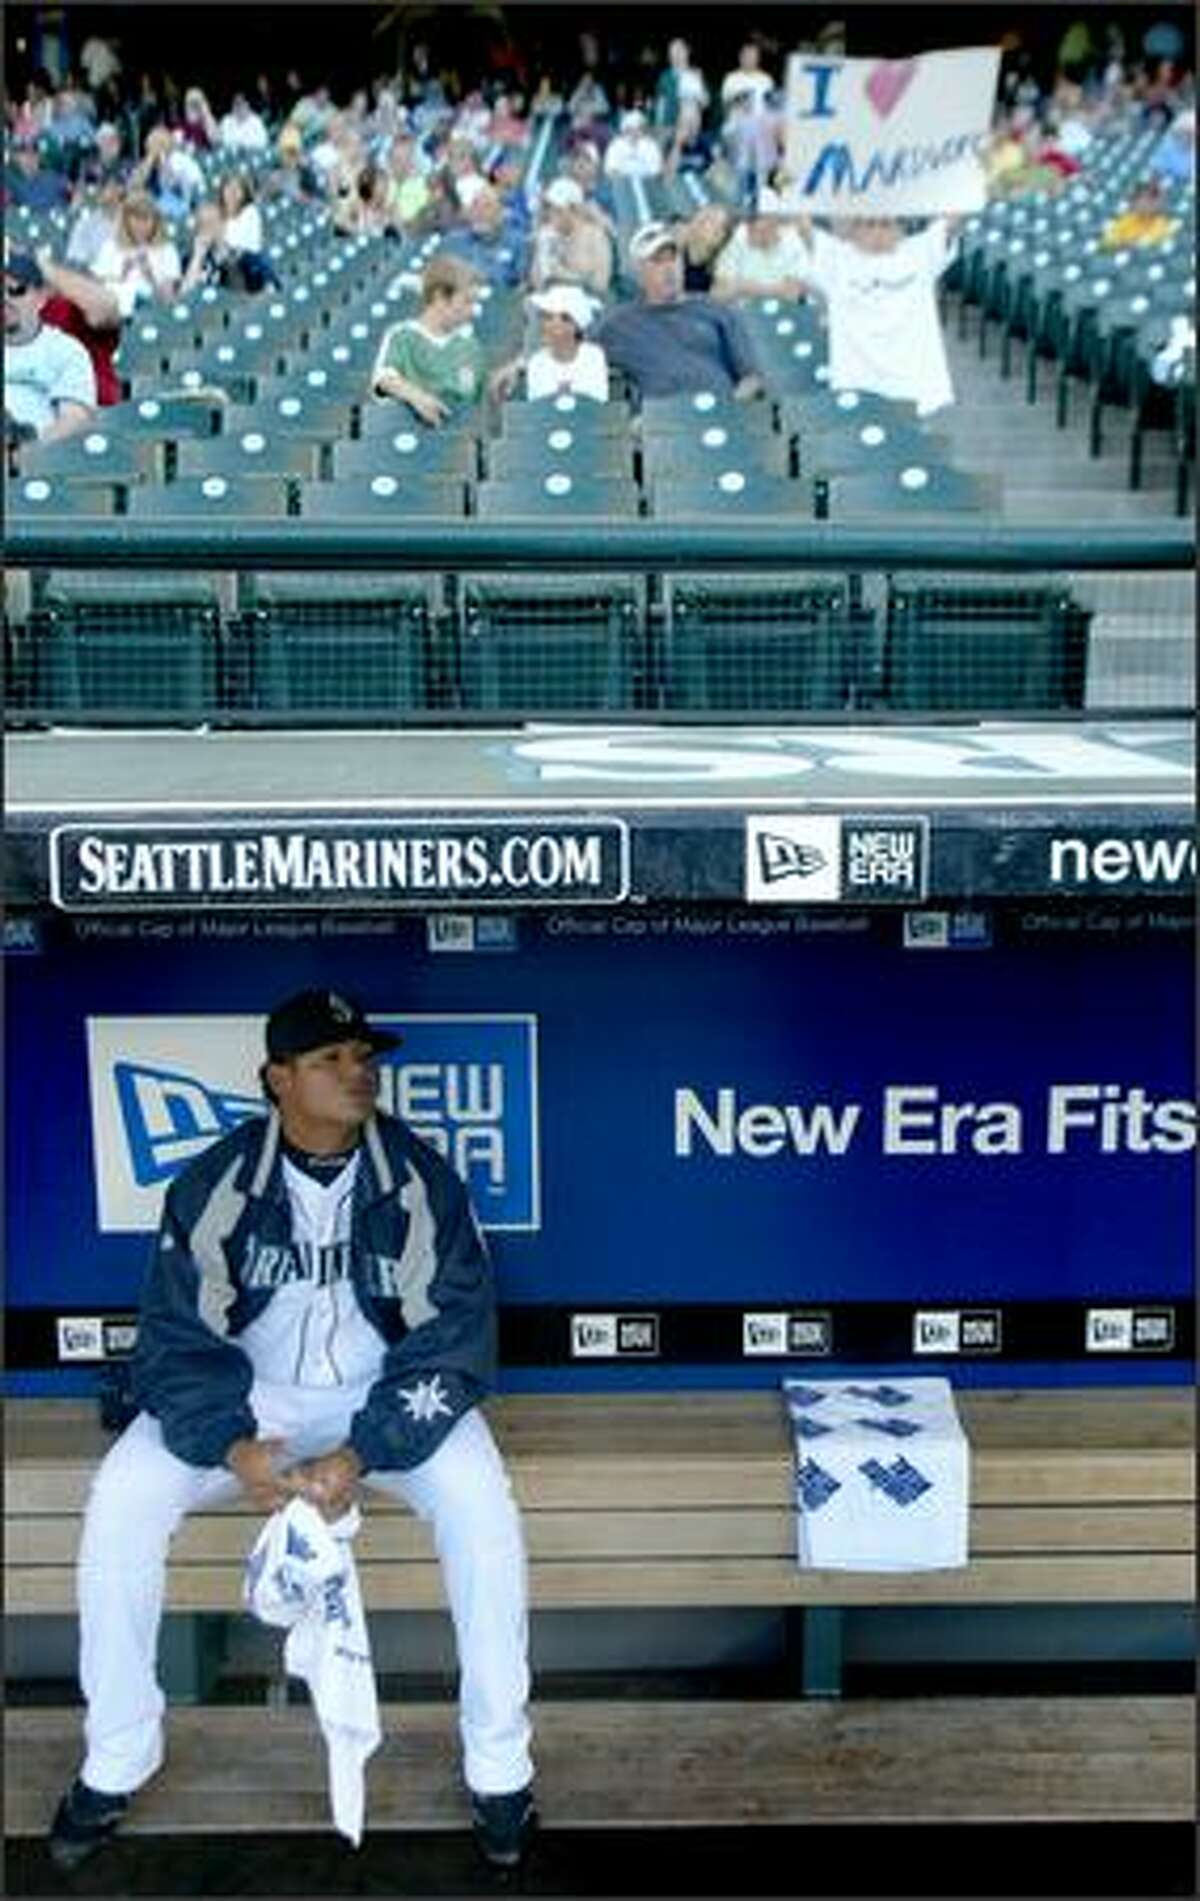 New Mariners pitcher Felix Hernandez sits alone in the dugout before his first start at Safeco Field. He allowed just five hits and no walks in eight innings to win 1-0.